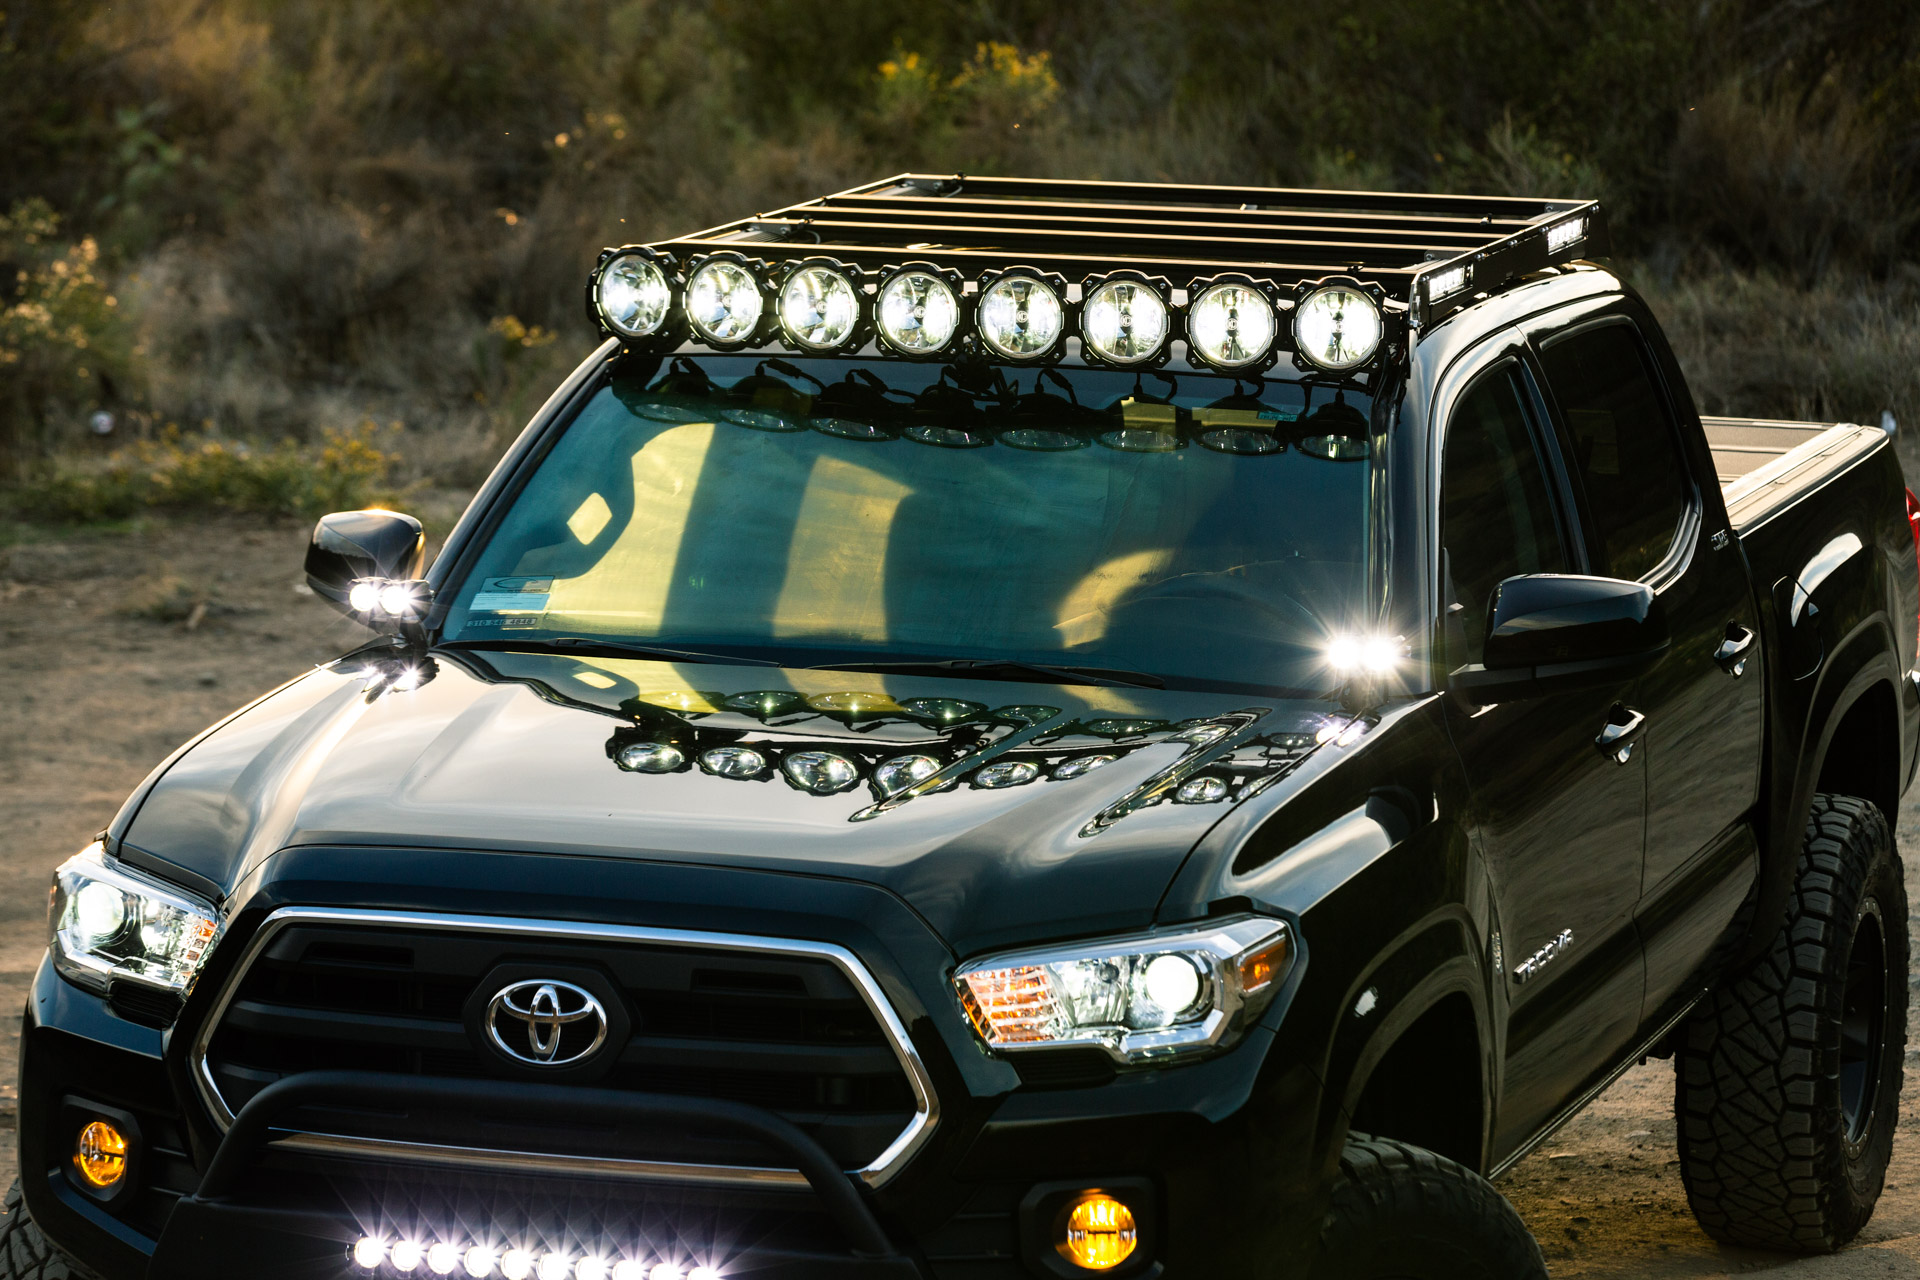 Black KC Toyota Tacoma with Roof Rack & Integrated Lighting - Image #04